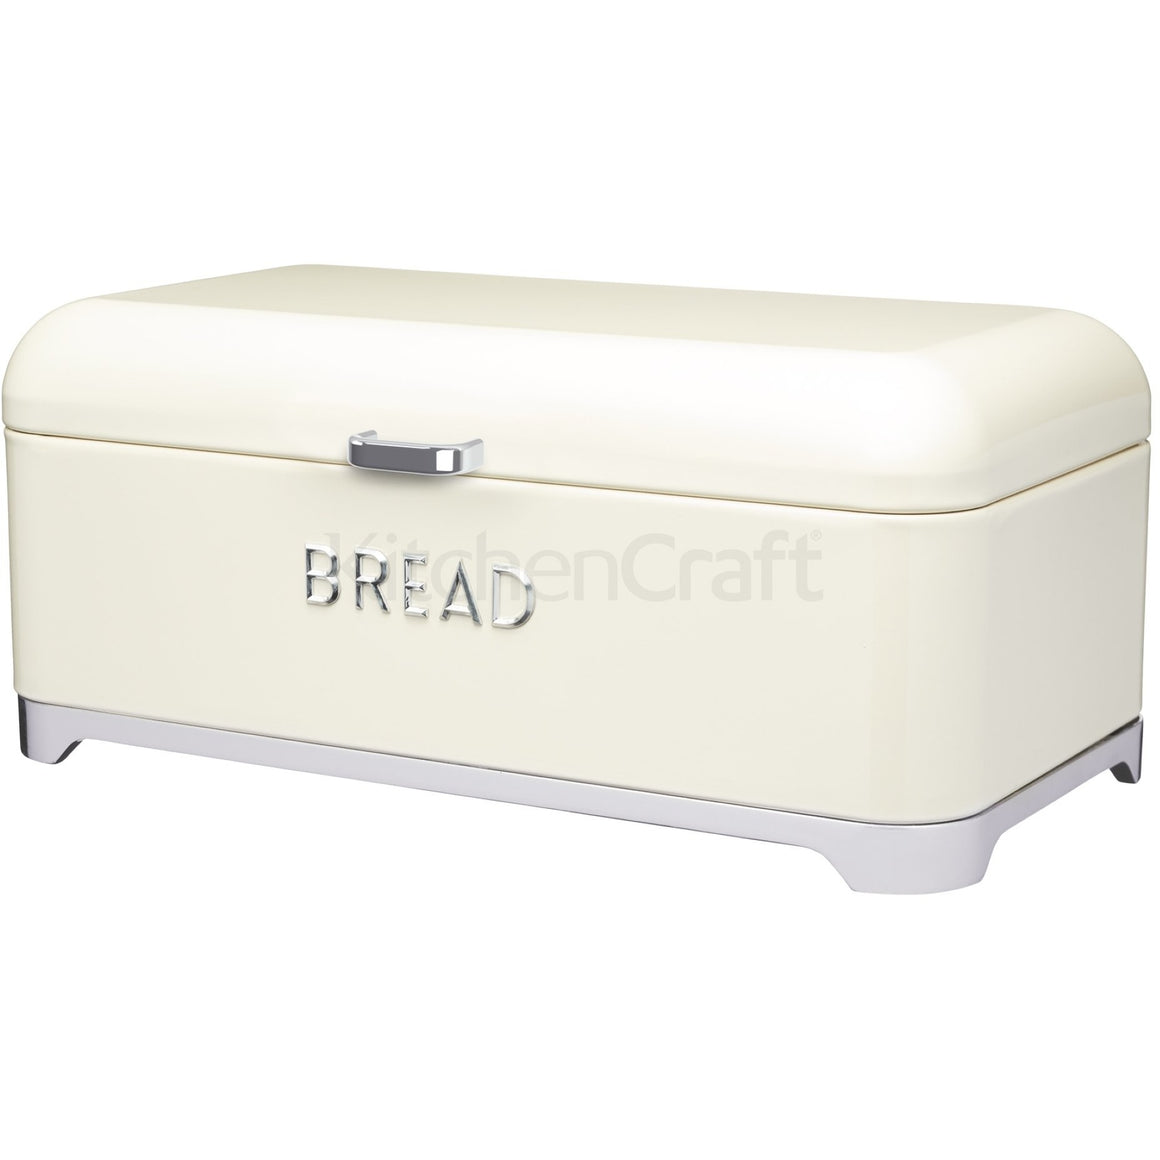 KitchenCraft Lovello Bread Bin Cream